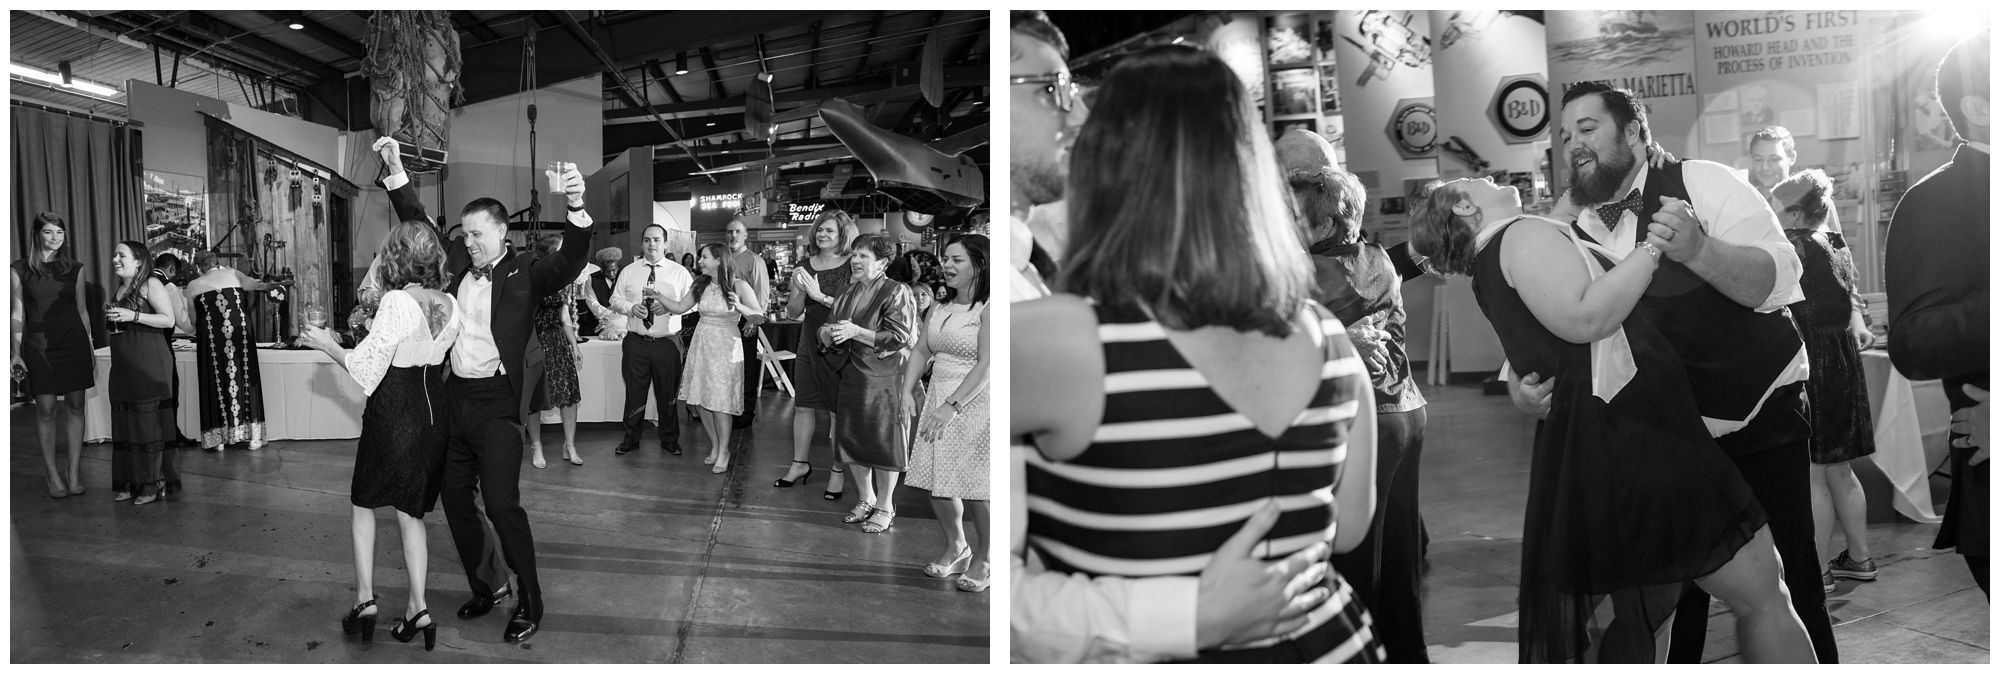 Wedding reception at Baltimore Museum of Industry